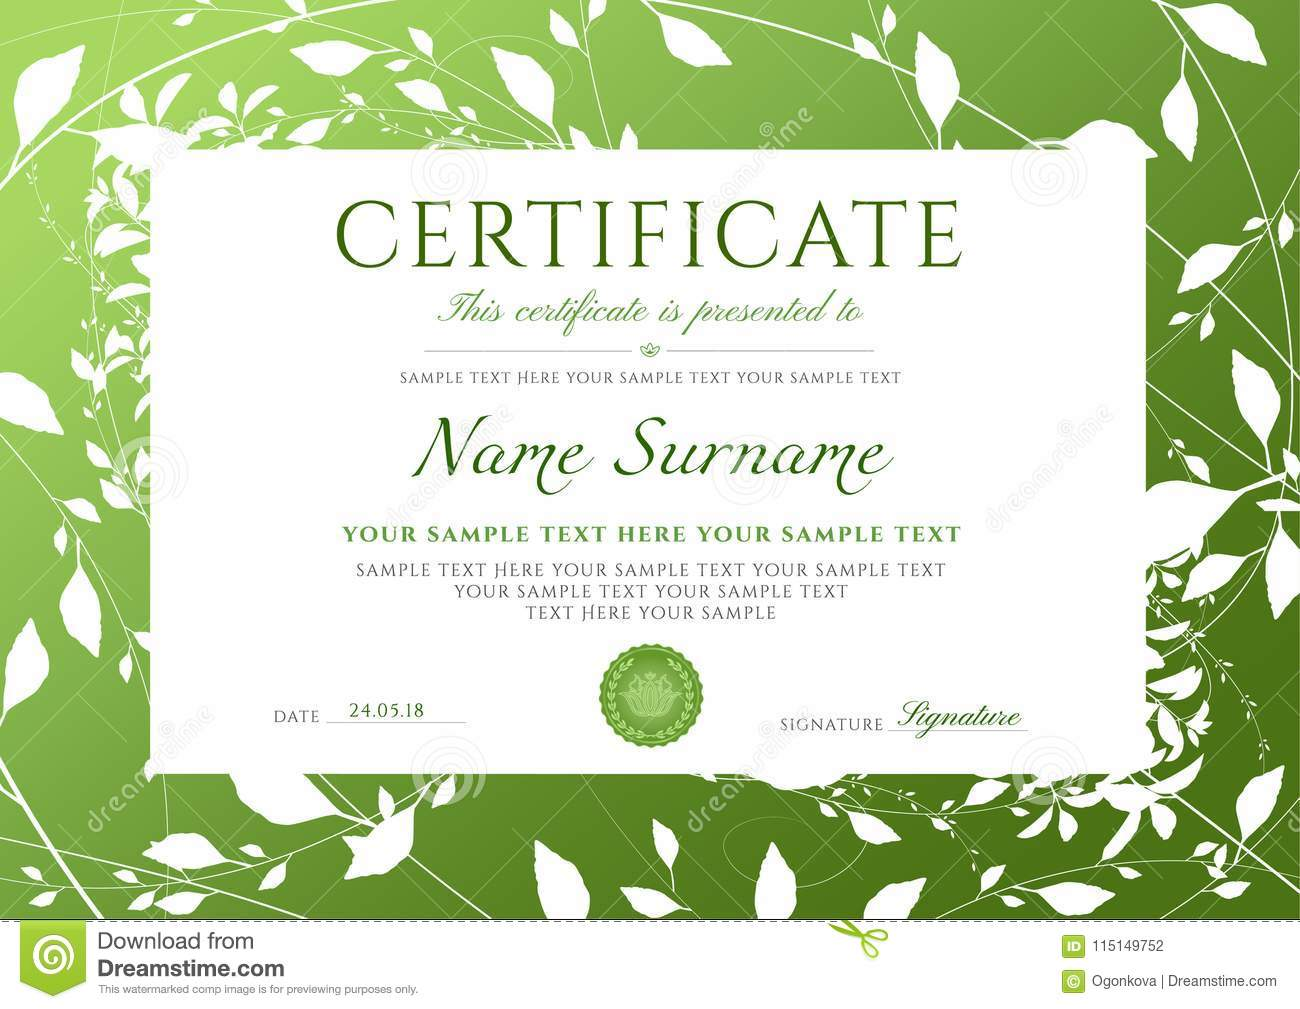 Certificate Of Completion Template With Green Floral ...